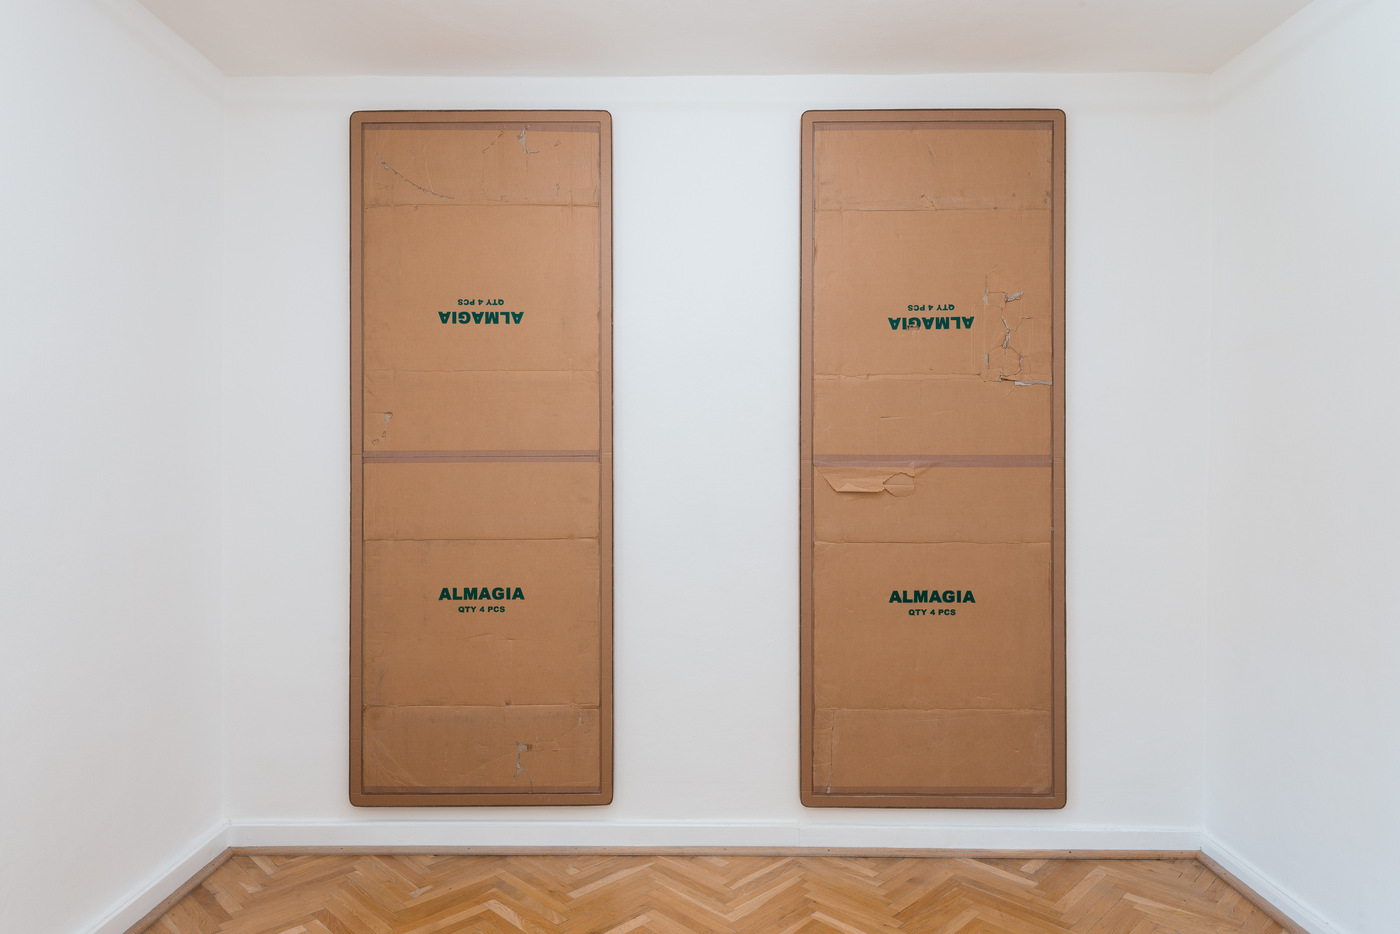 ProcessPerformancePresence_Greber at Kunstverein Braunschweig